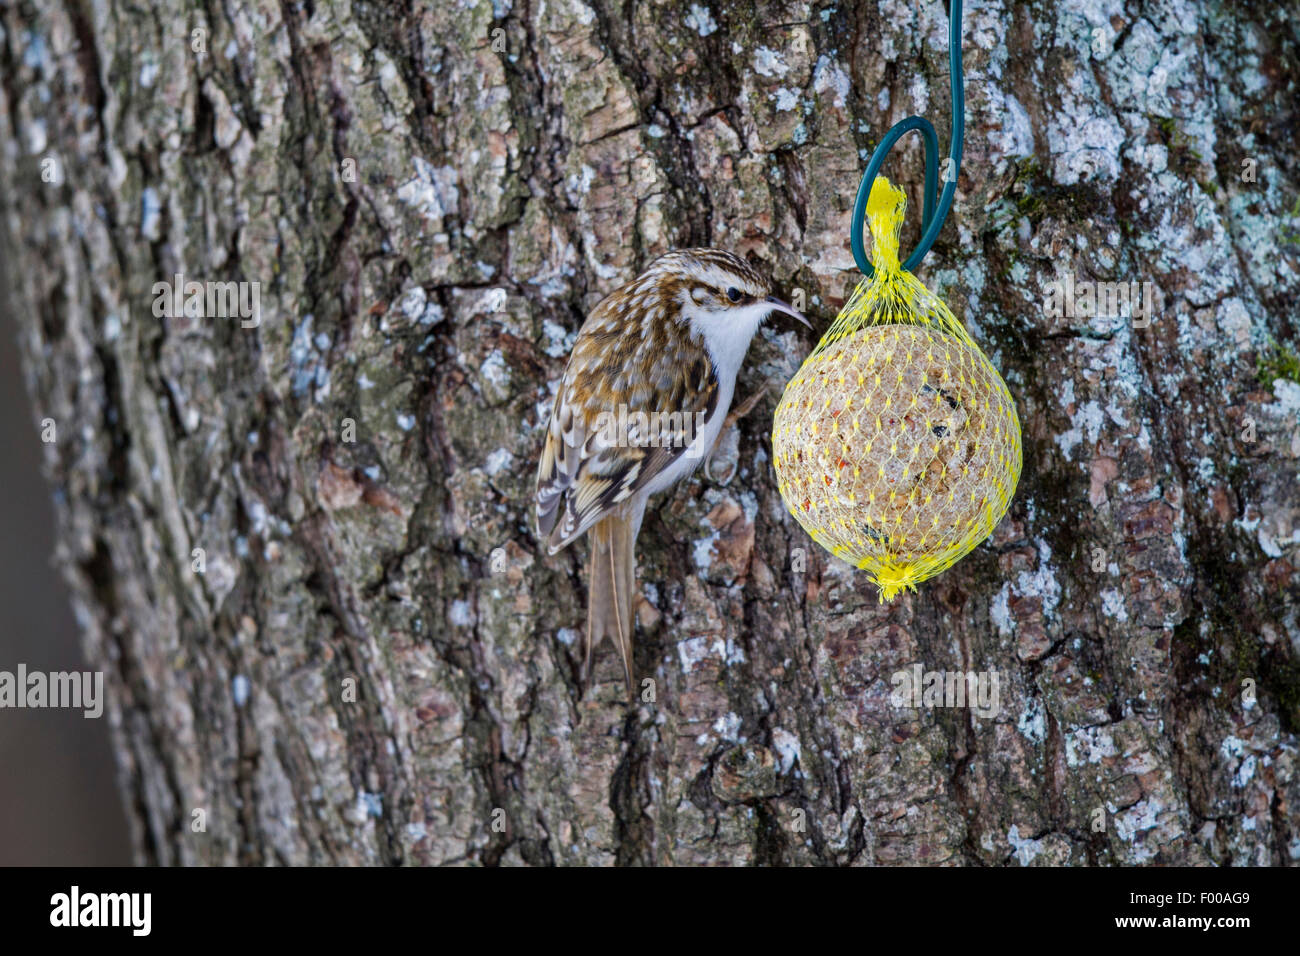 common treecreeper (Certhia familiaris), eating at a fat ball, Germany, Bavaria - Stock Image